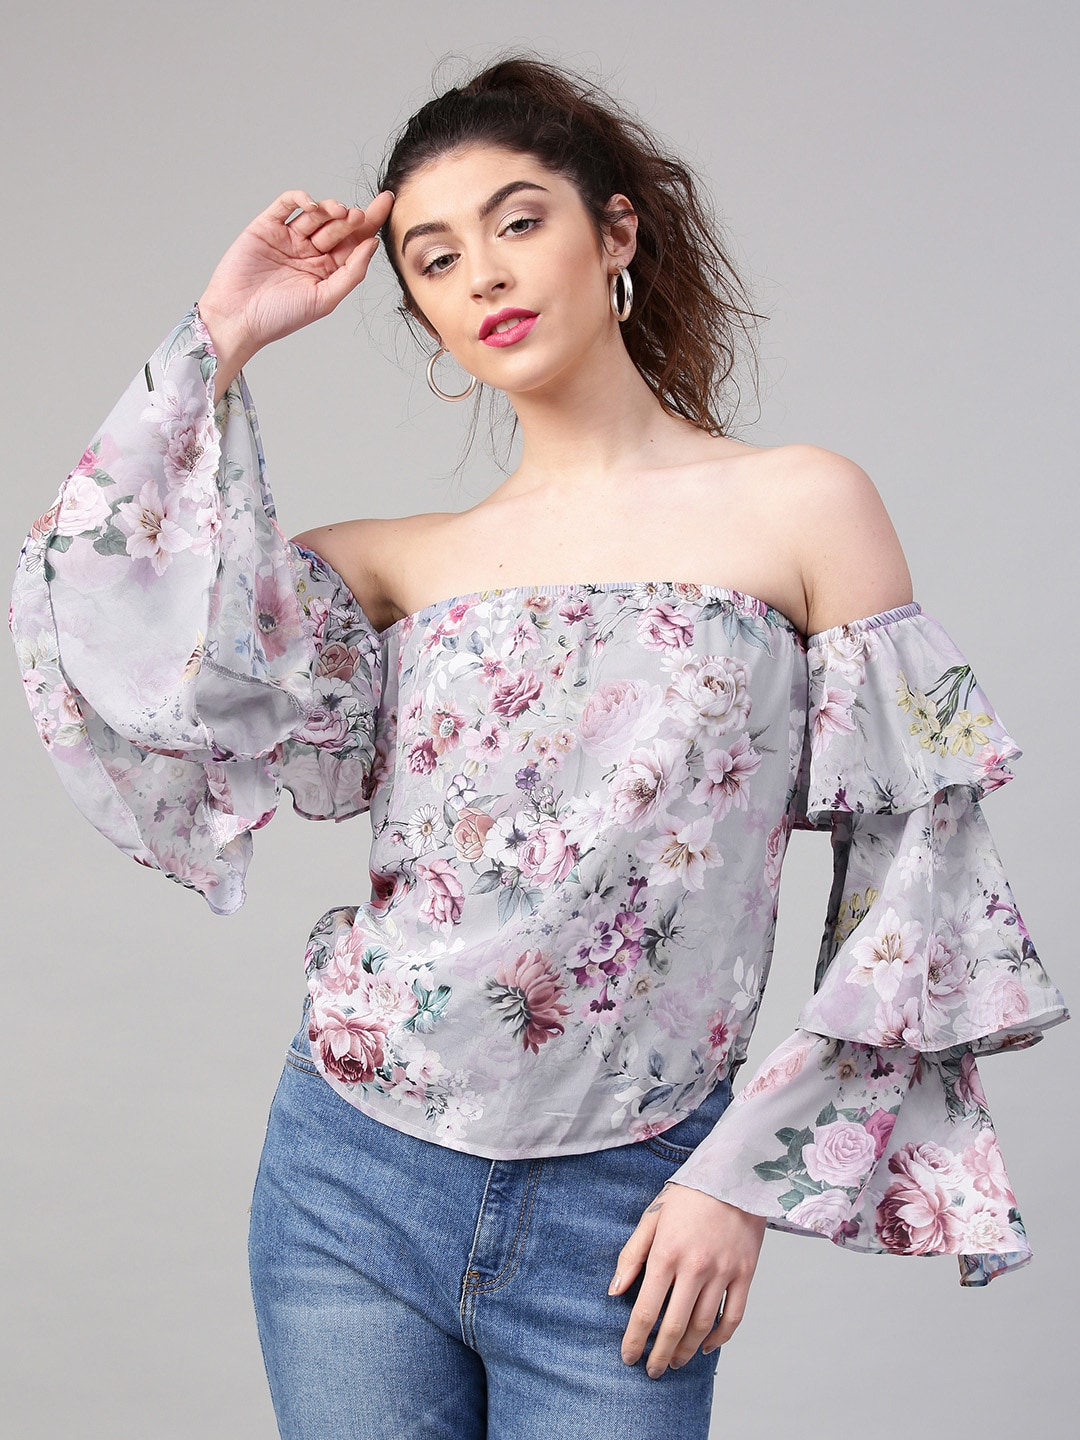 d9a36aa3ecf329 Floral Print Tops - Buy Floral Print Tops online in India